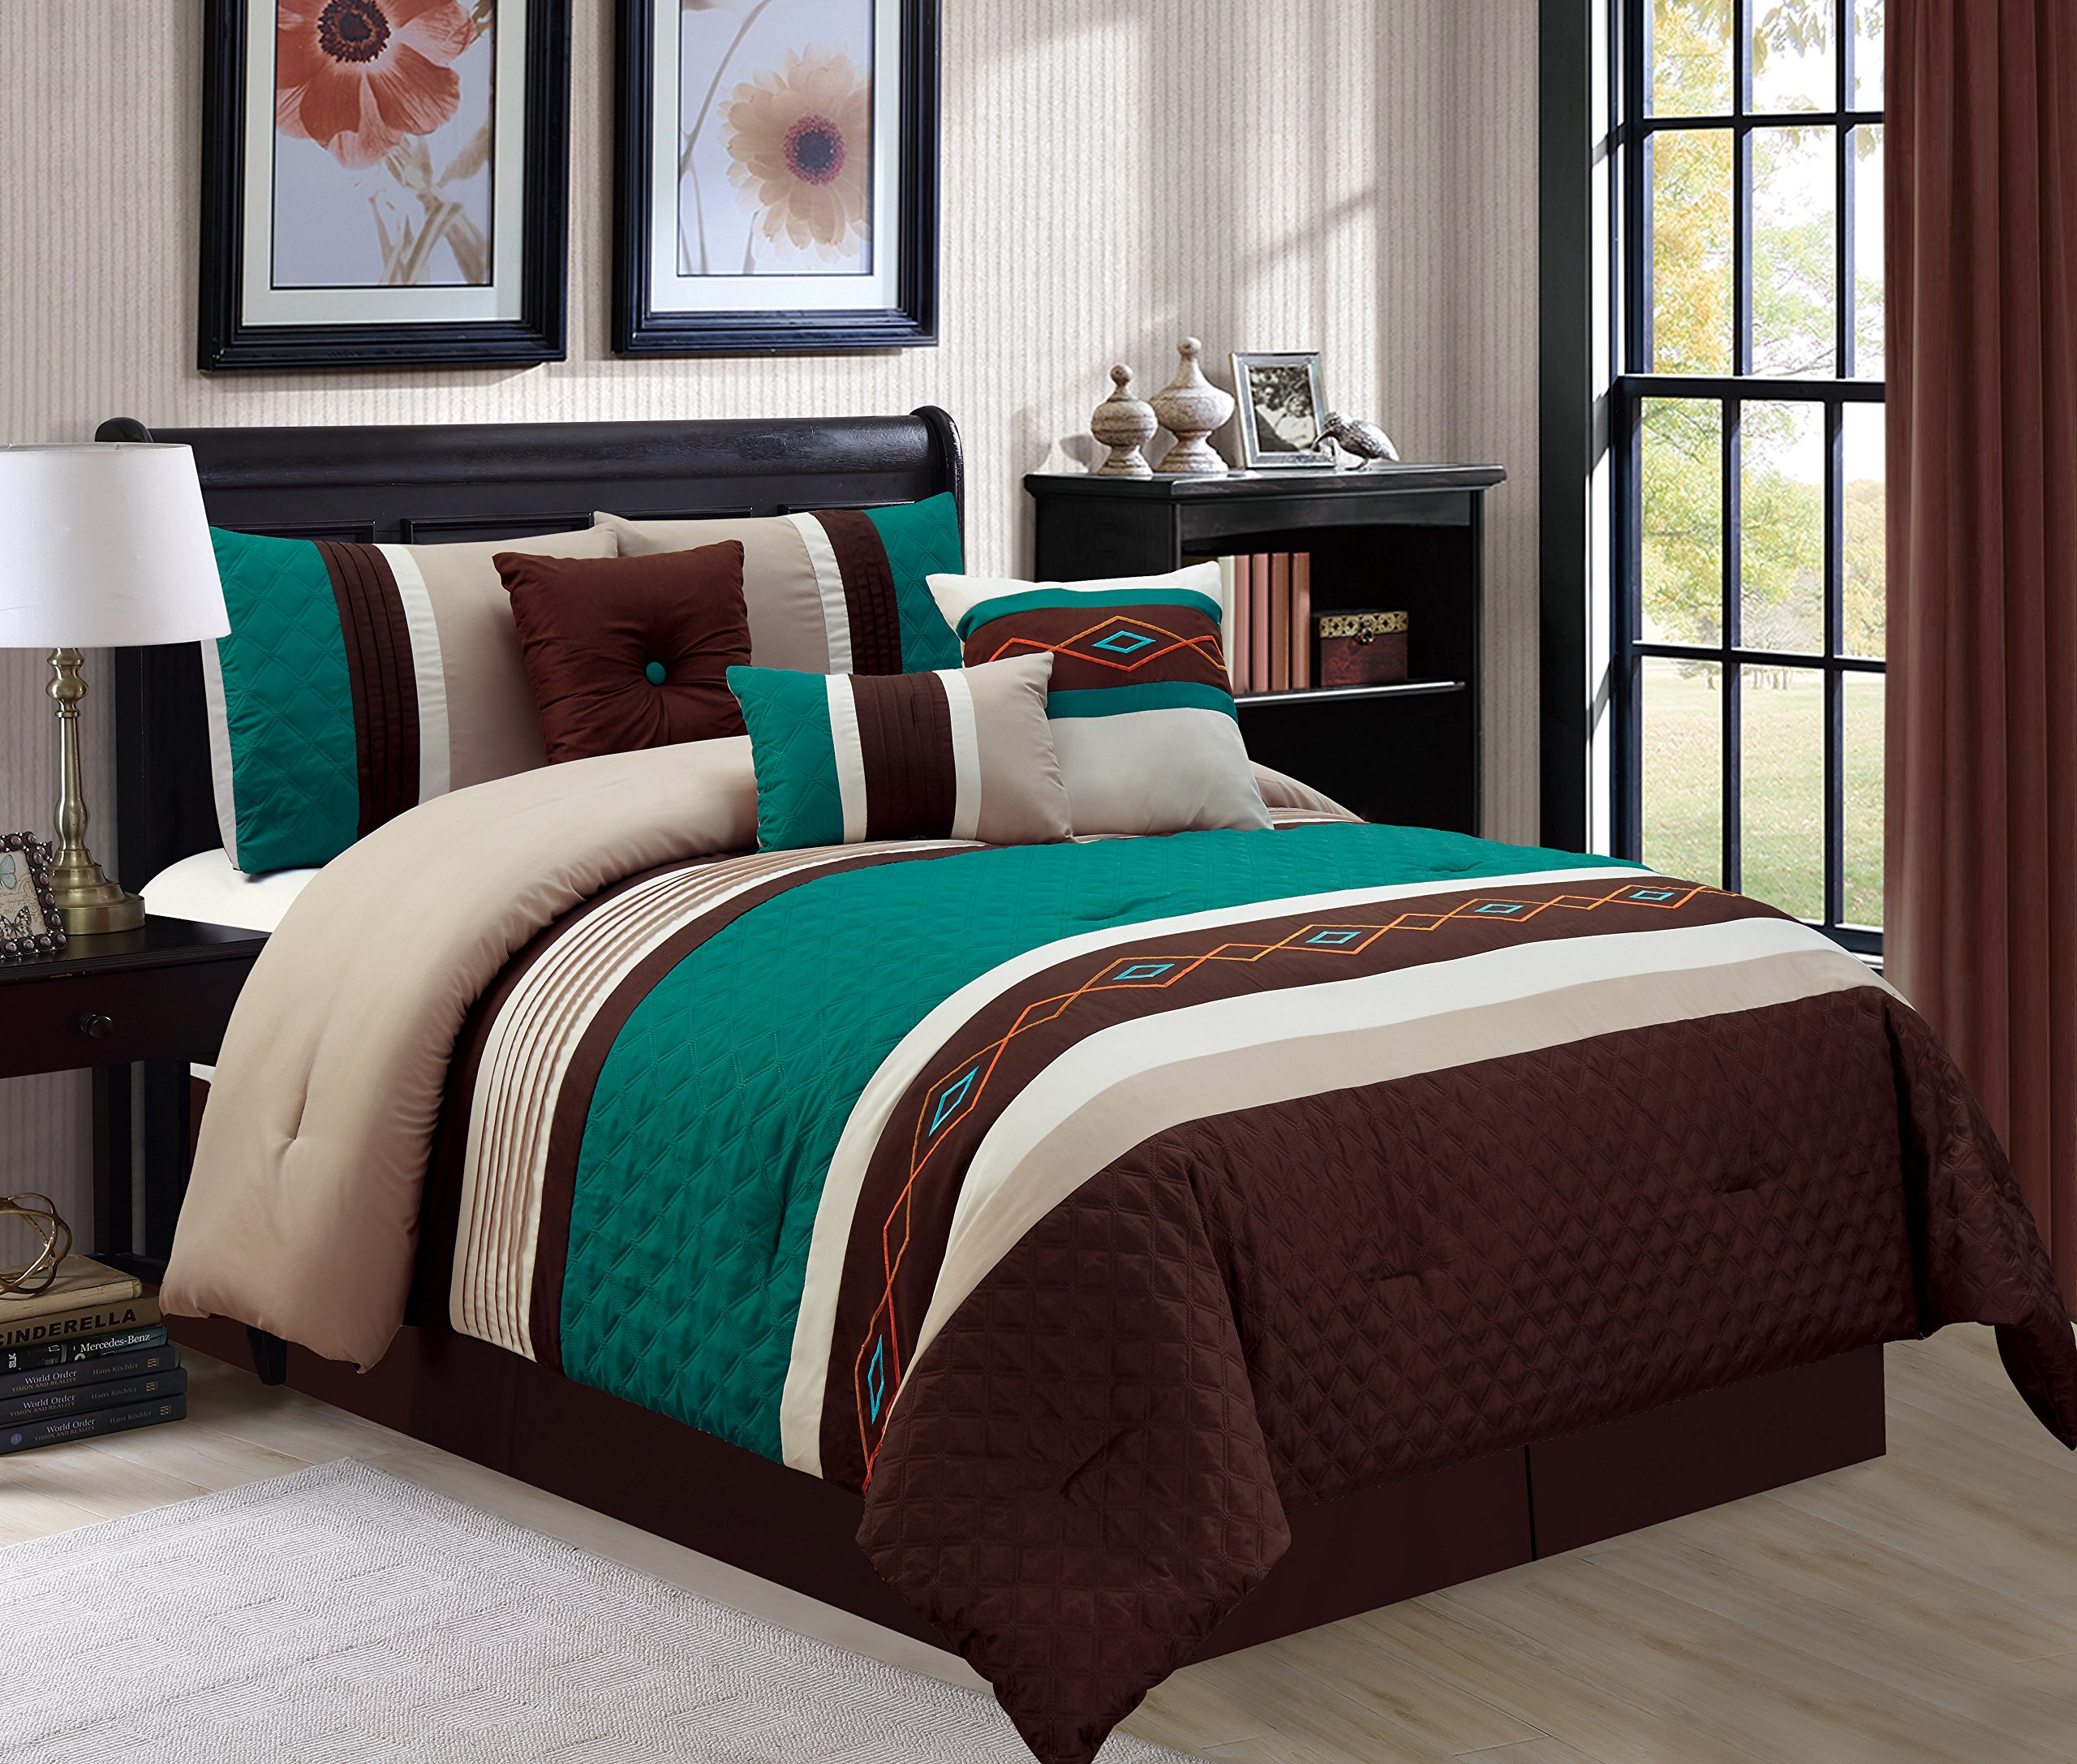 WPM 7 Piece Bedding set, Green, brown, Taupe Comforter with Accent pillows Queen size Bed in a Bag-Yeva